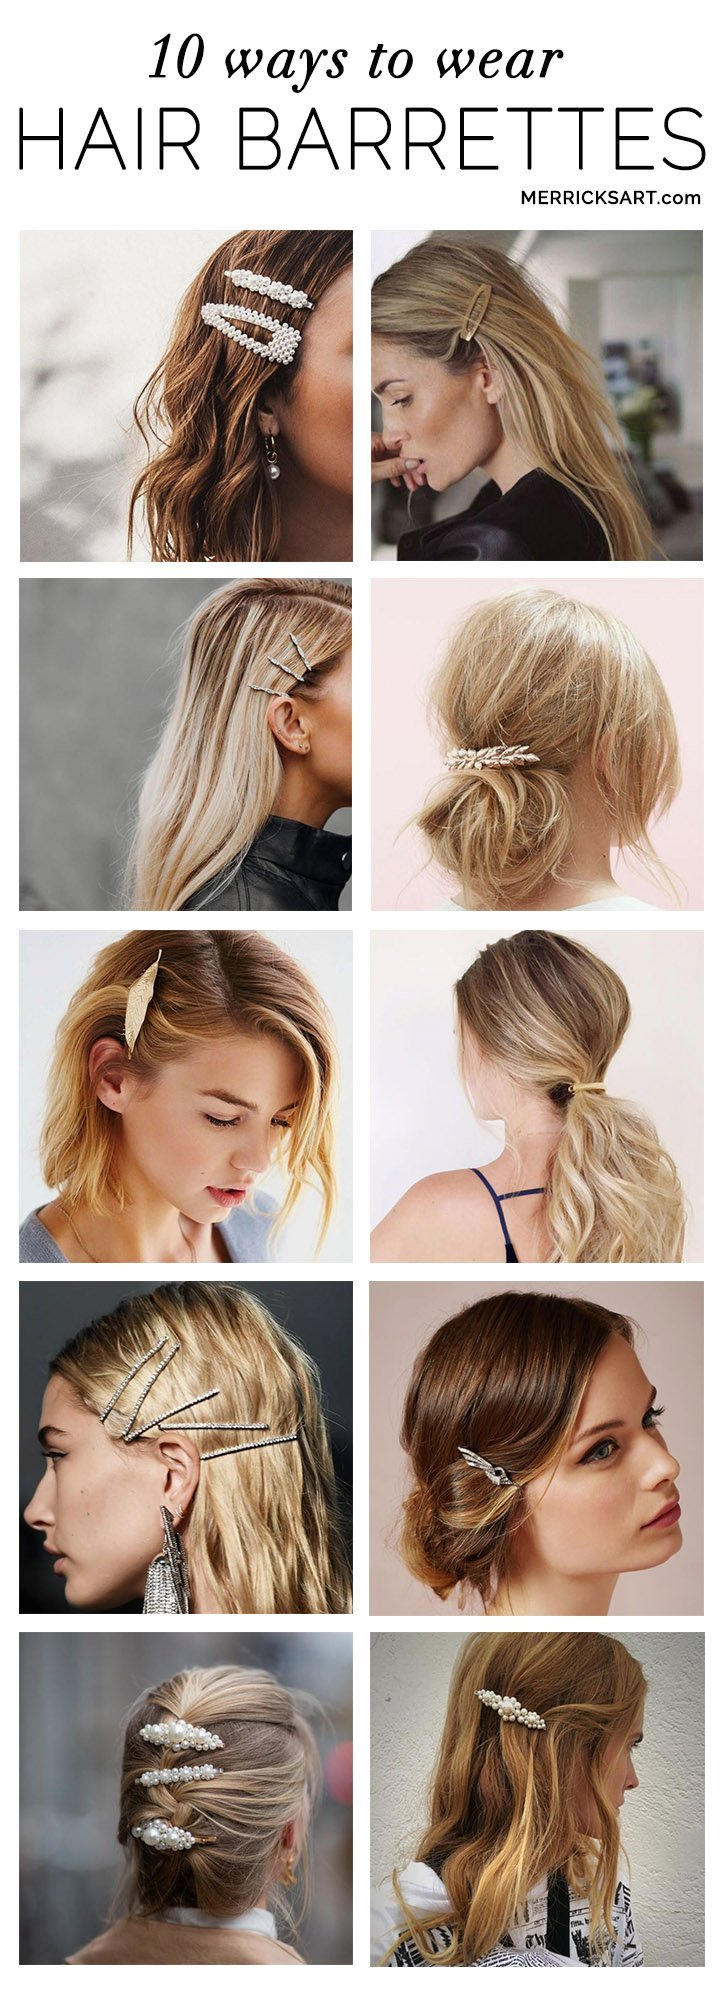 10 ways to wear hair barrettes